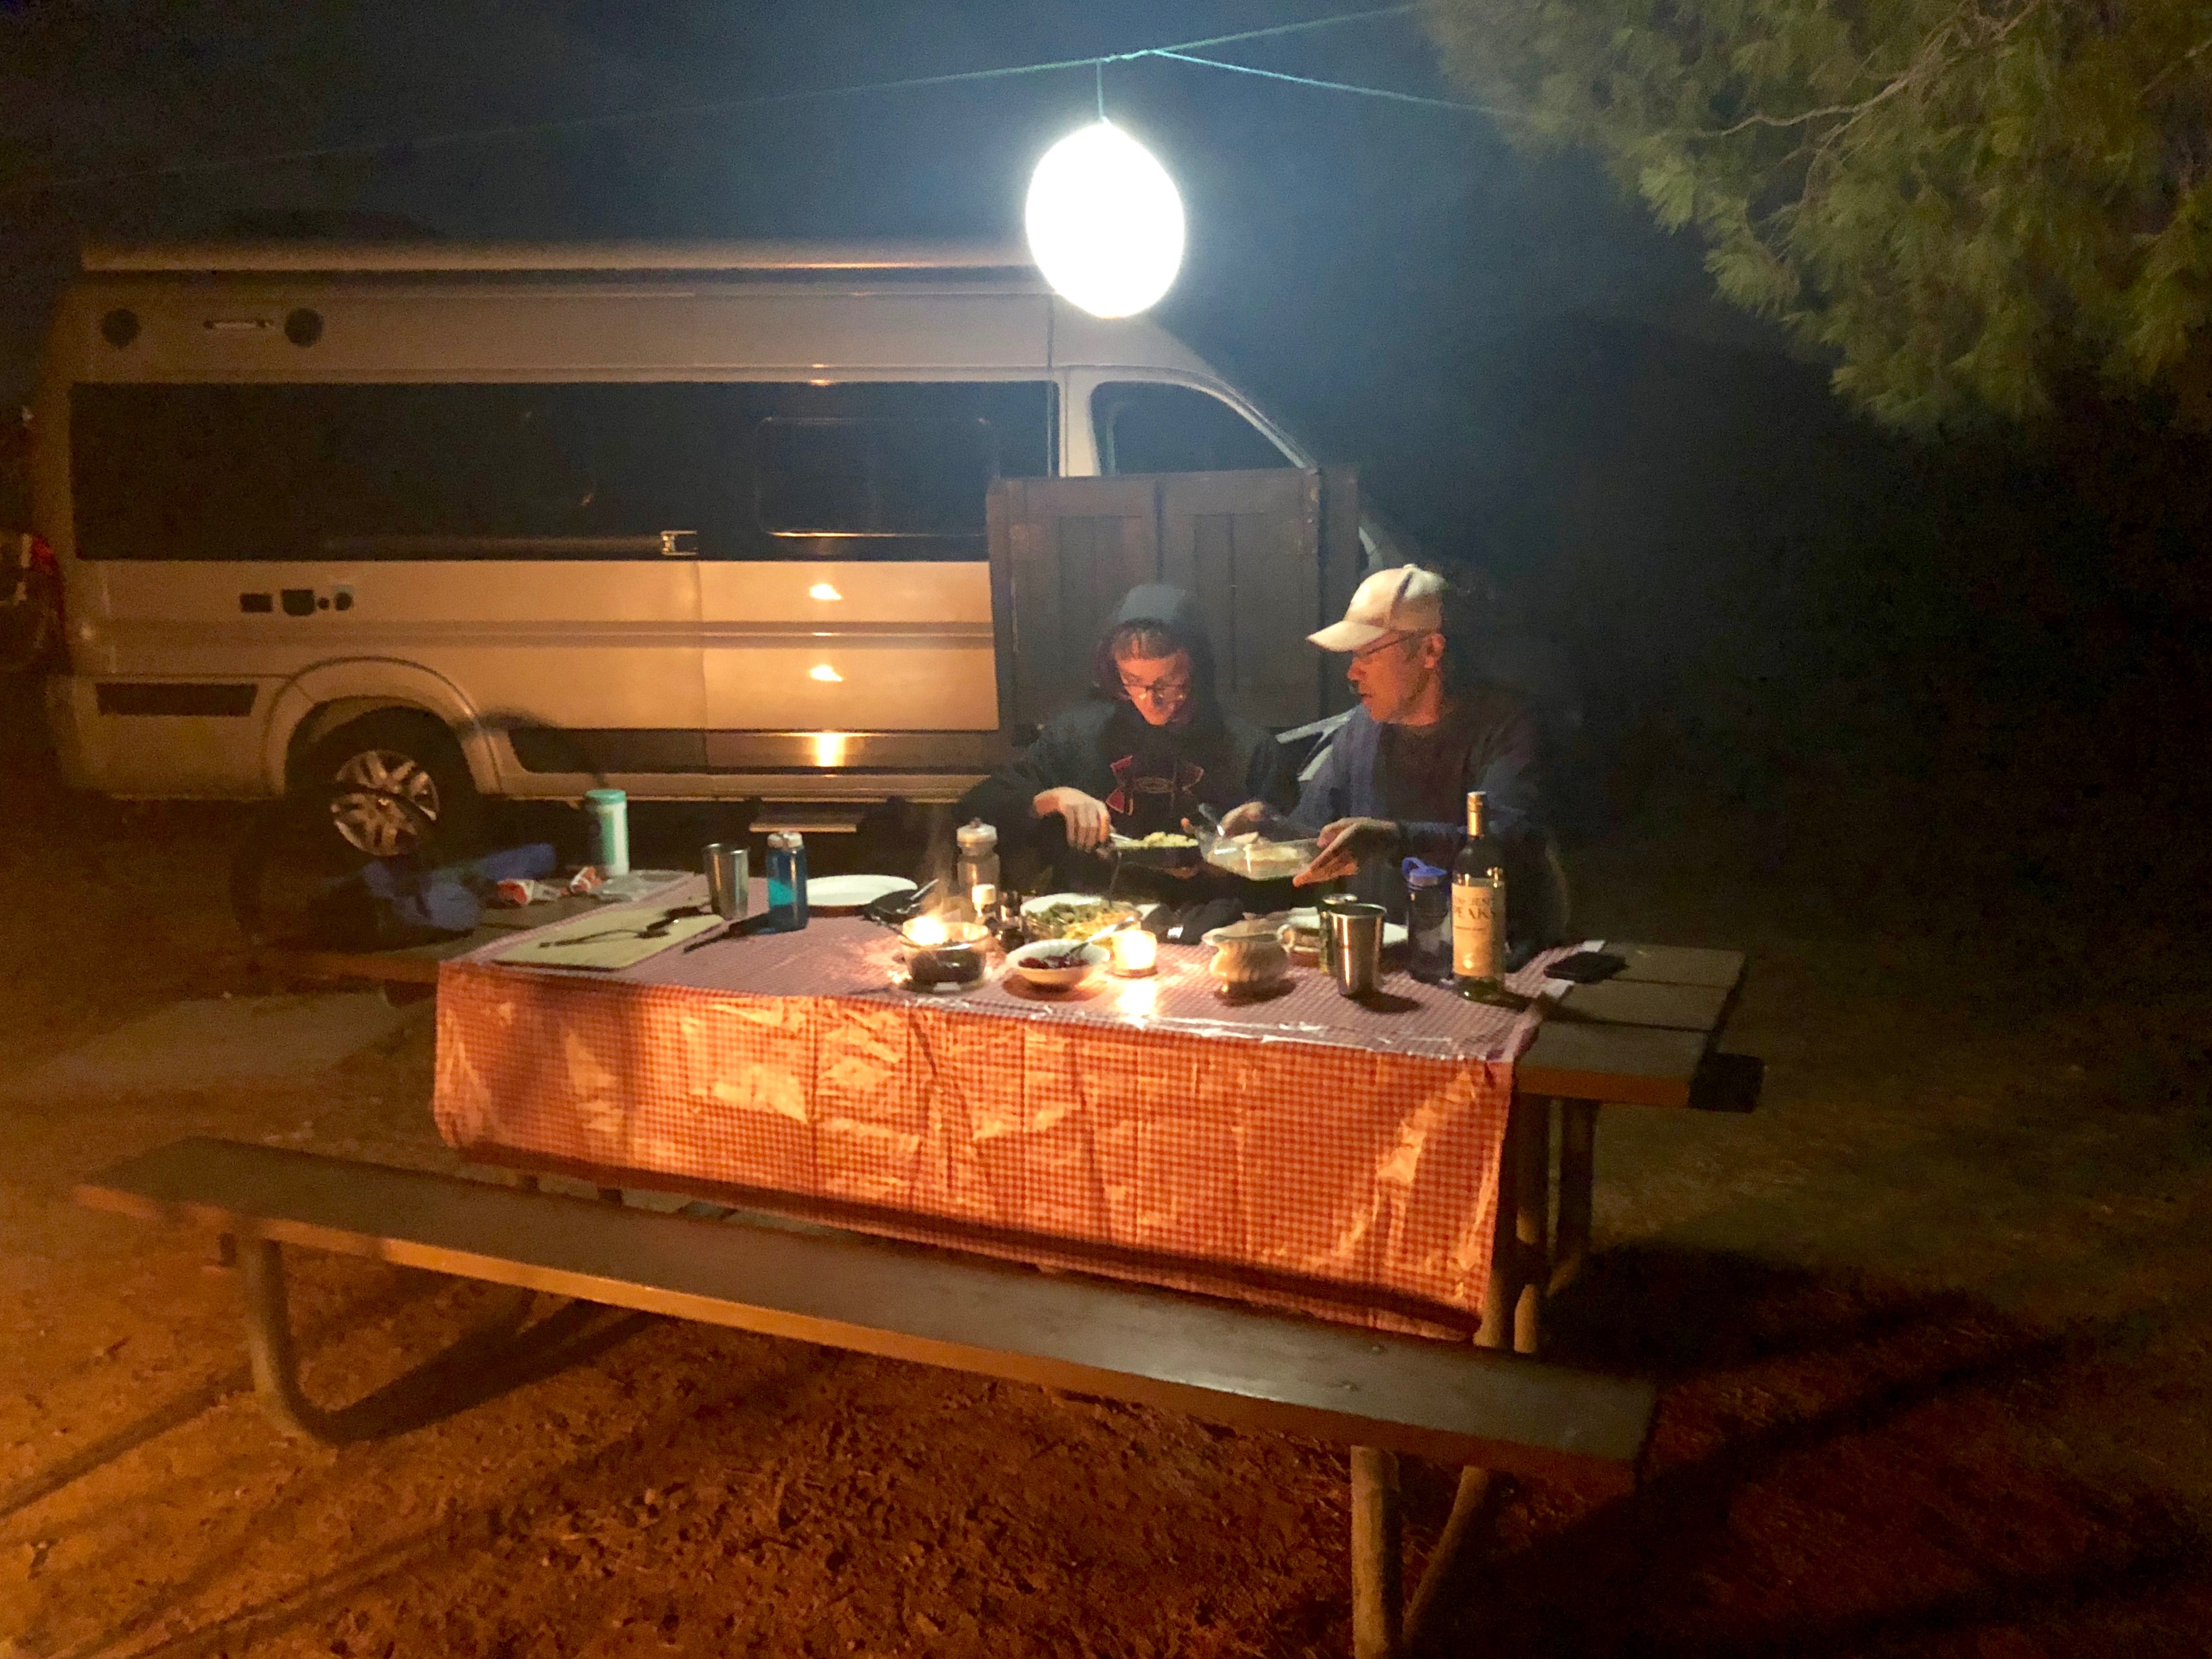 Solar glob strung over campground dinner table